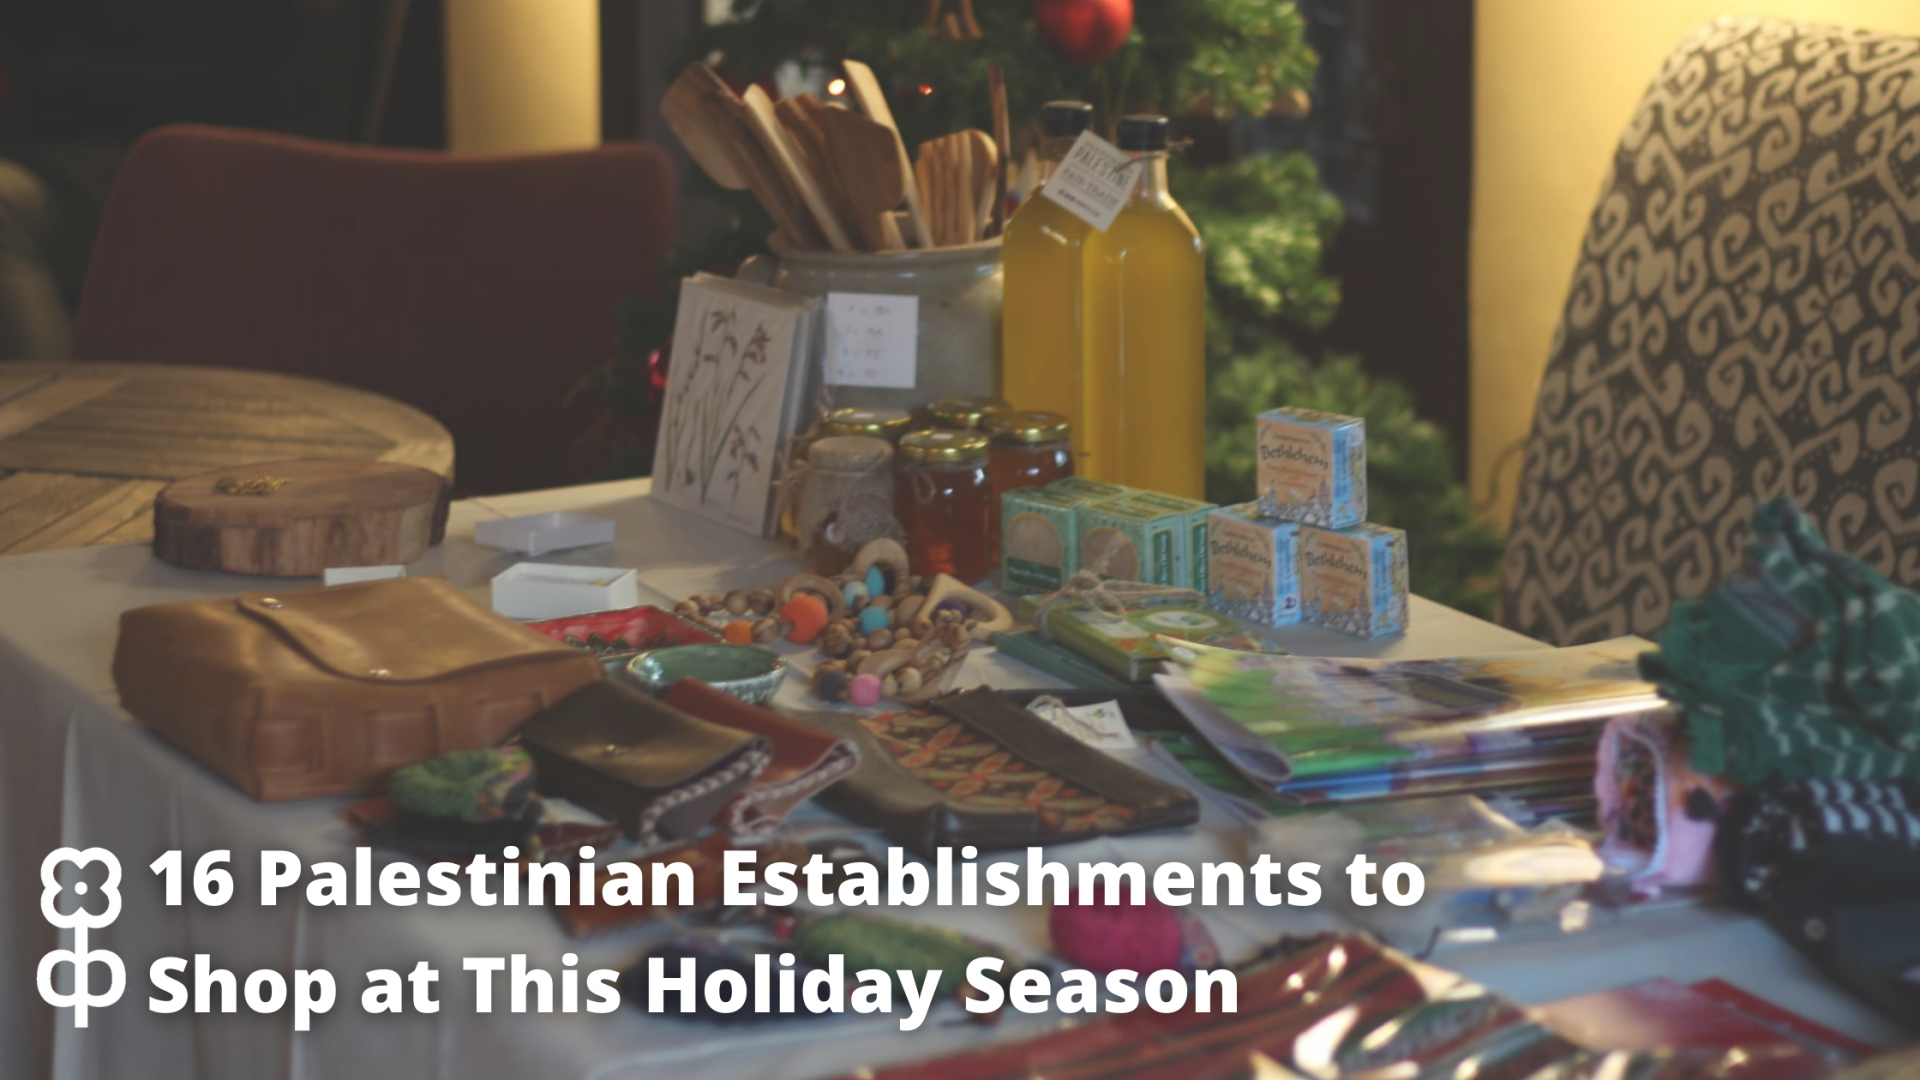 16 Palestinian Establishments to Shop at This Holiday Season